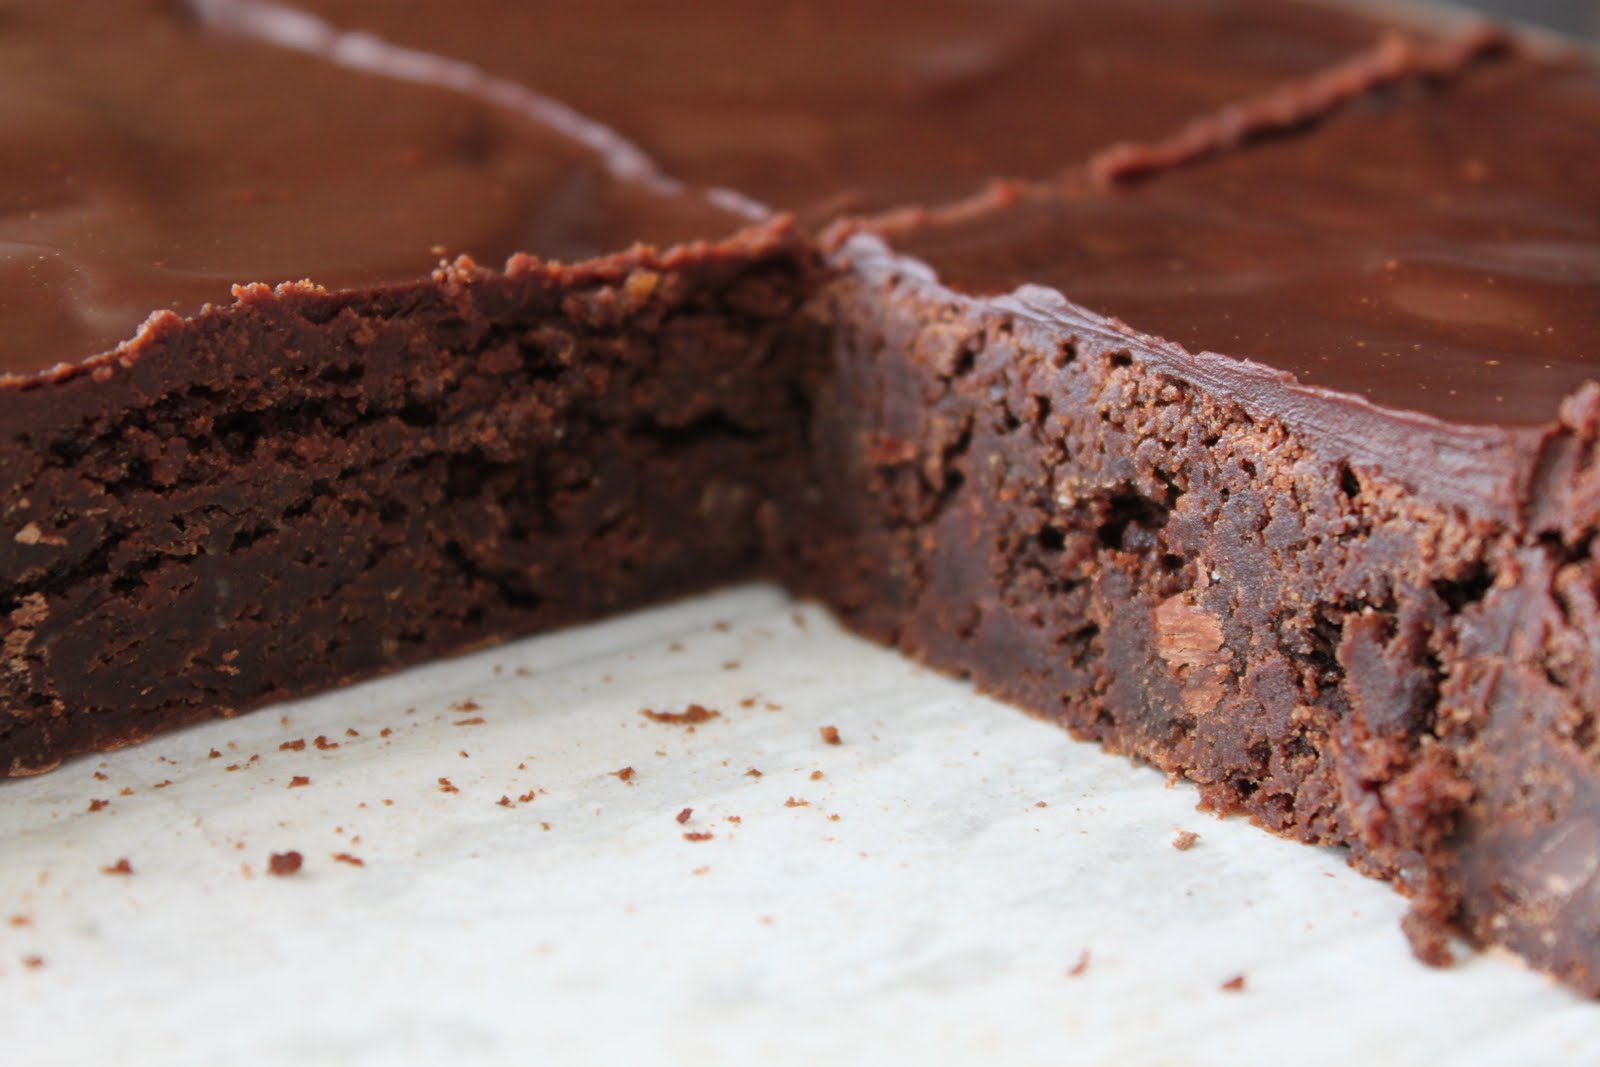 a bountiful kitchen barefoot contessa outrageous brownies with